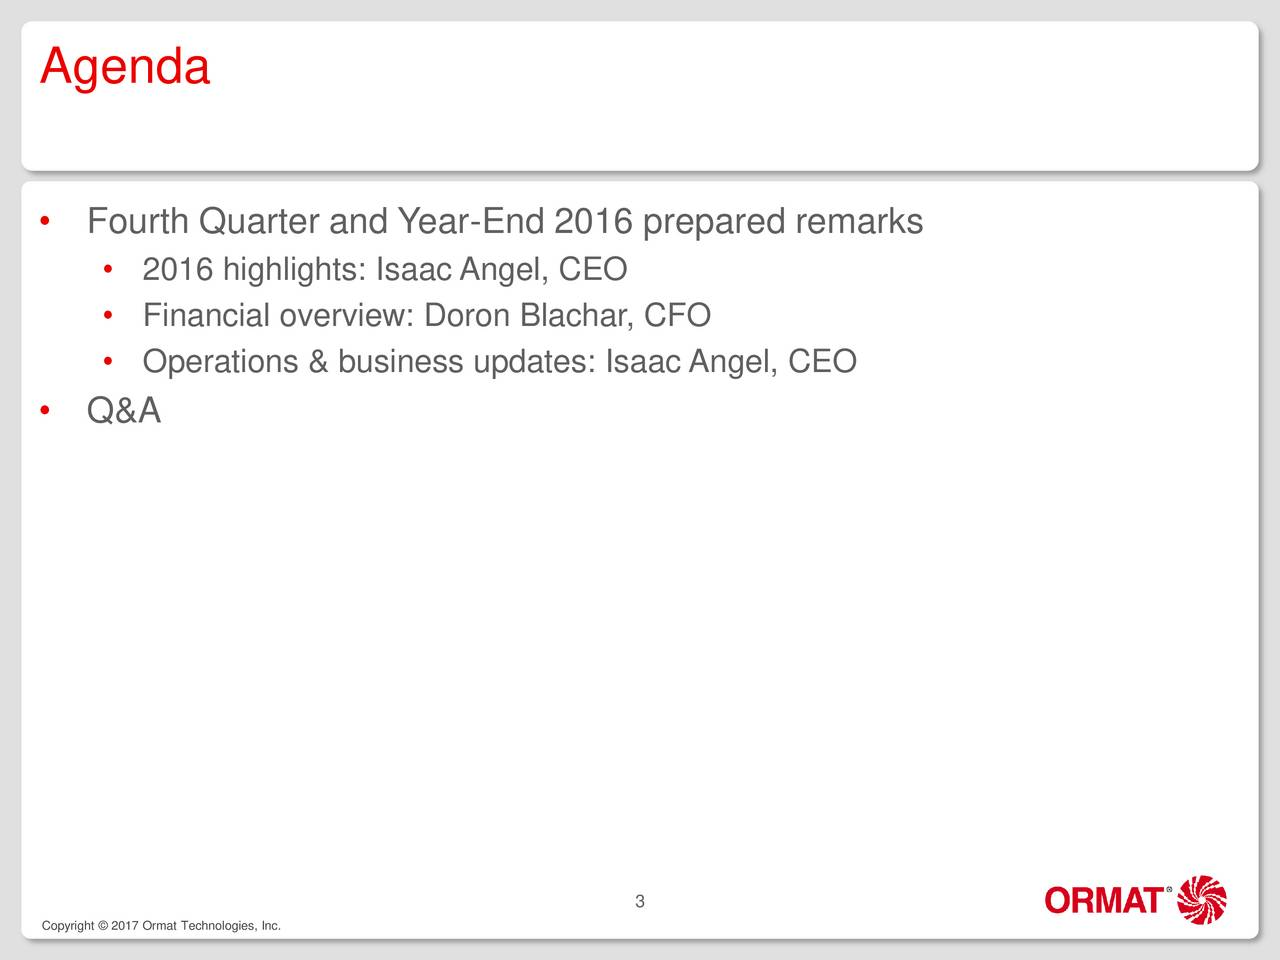 Fourth Quarter and Year-End 2016 prepared remarks 2016 highlights: Isaac Angel, CEO Financial overview: Doron Blachar, CFO Operations & business updates: Isaac Angel, CEO Q&A 3 Copyright  2017 Ormat Technologies, Inc.